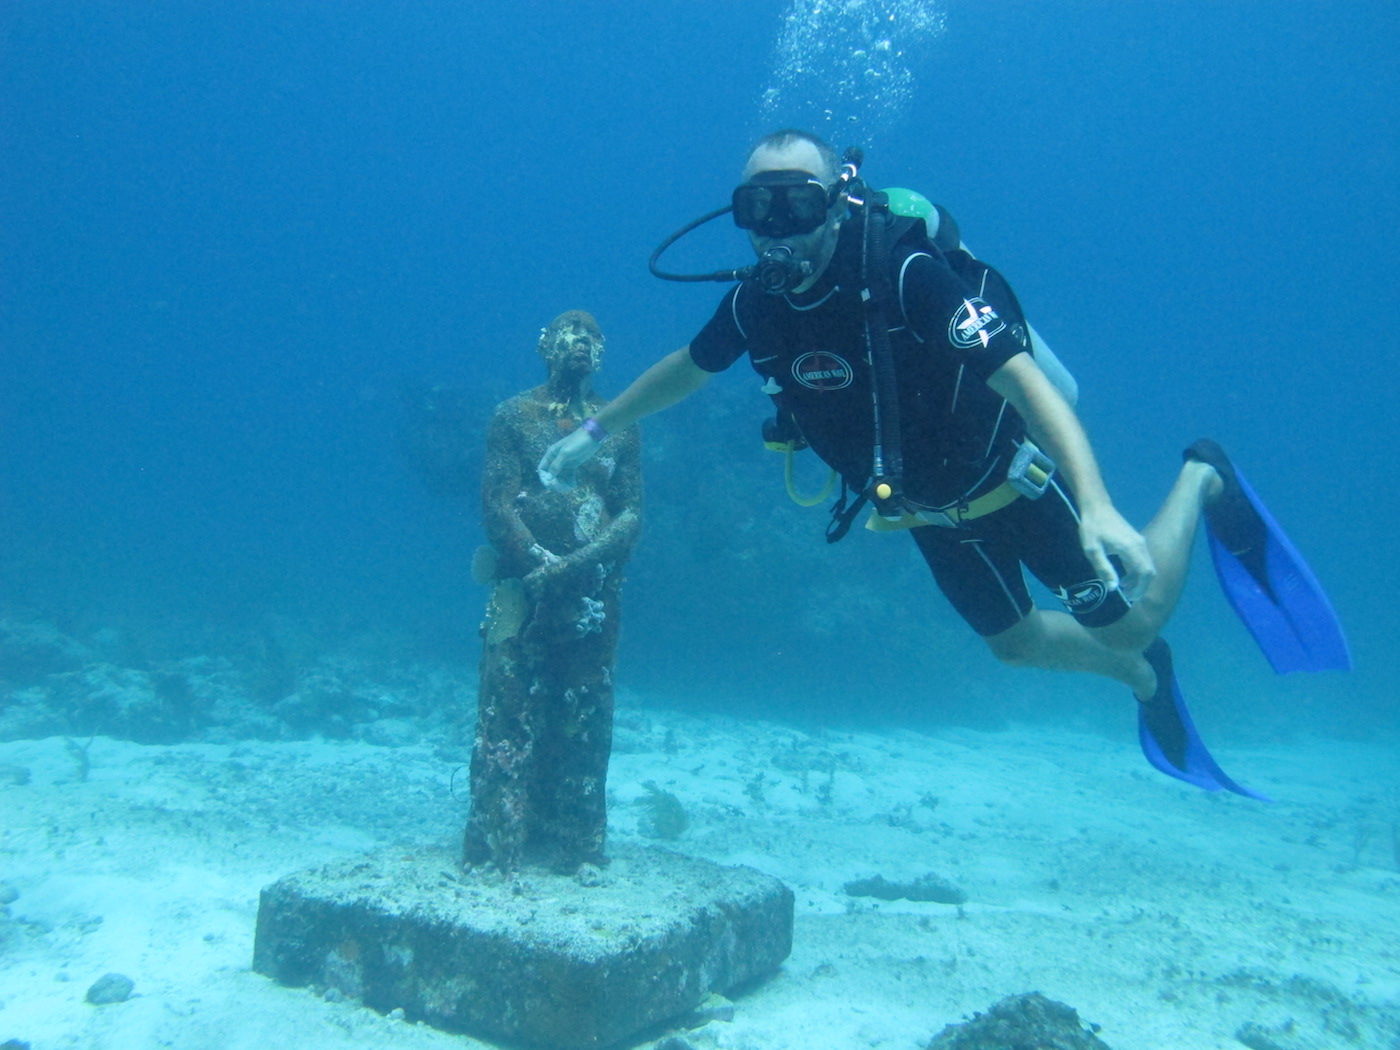 MUSA-Underwater-Museum-Snorkeling-Scuba-Diving-Tours-Isla-Mujeres-Carey-Dive-Center-4